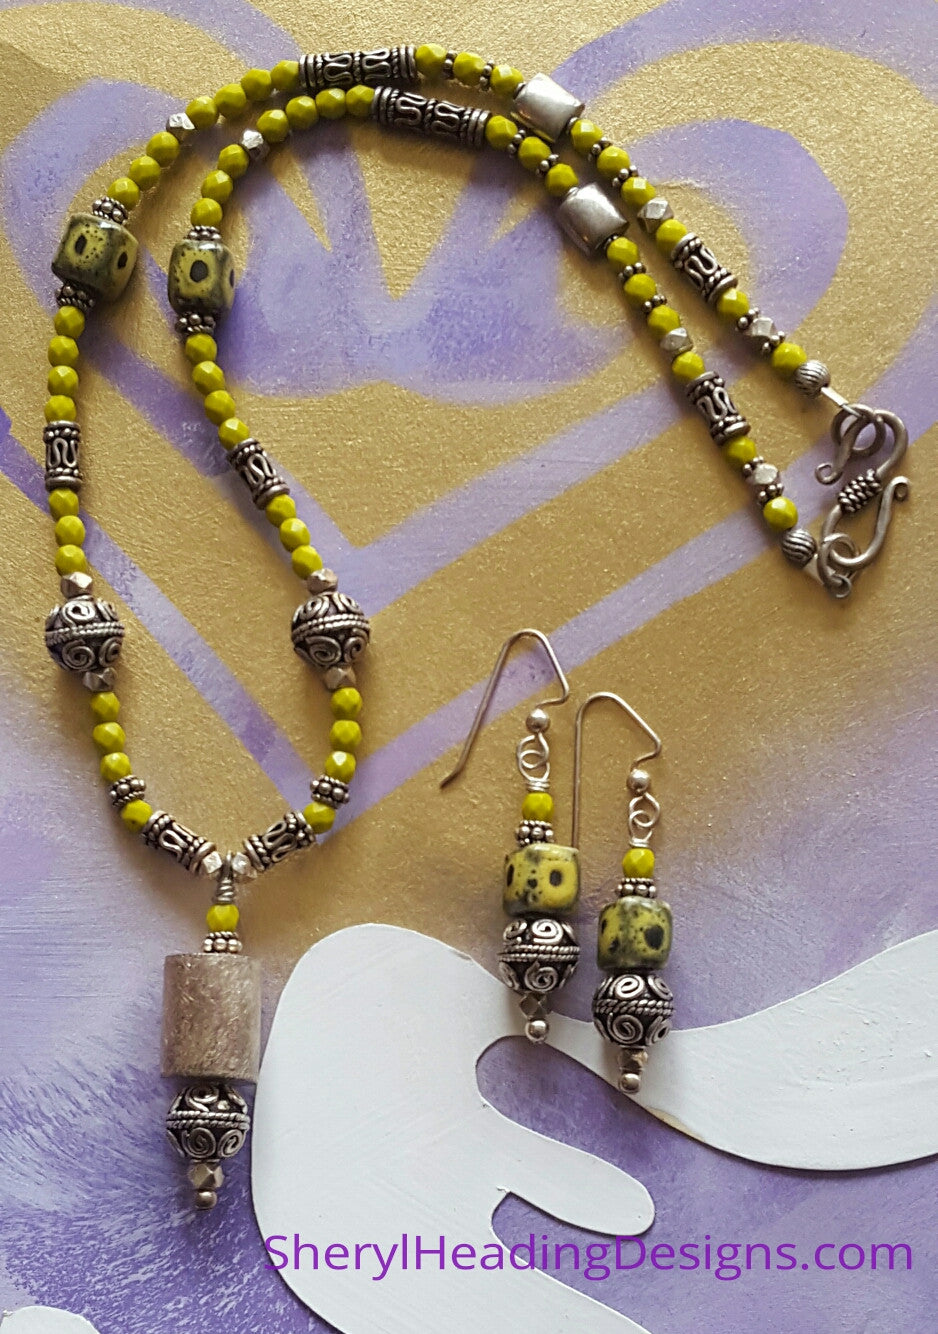 Bali Delicious Necklace and Earring Set - Sheryl Heading Designs